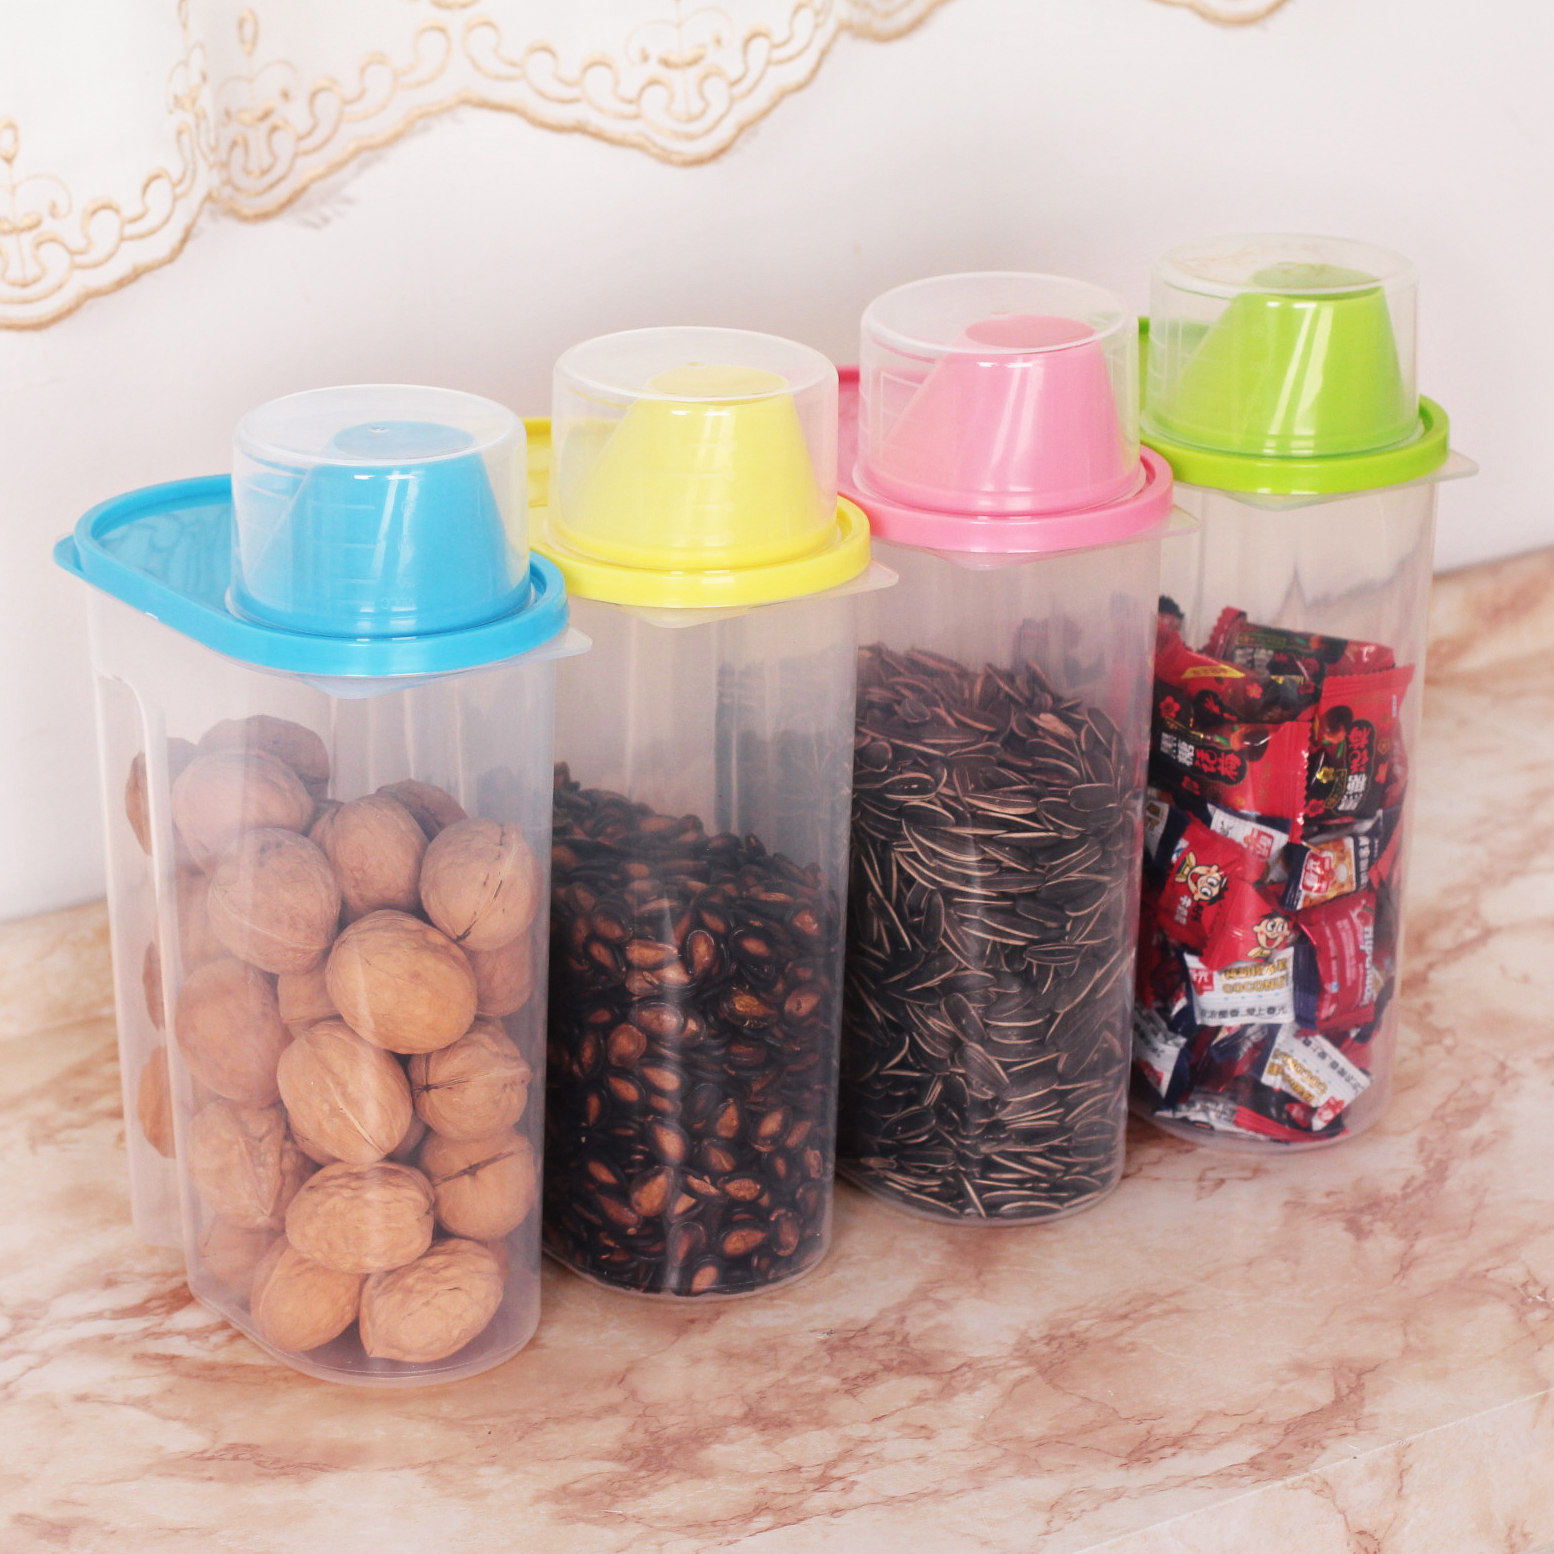 Free shipping exposed oversized kitchen grains 2.5l sealed cans family of four plastic grain cereals canister canister storage tank